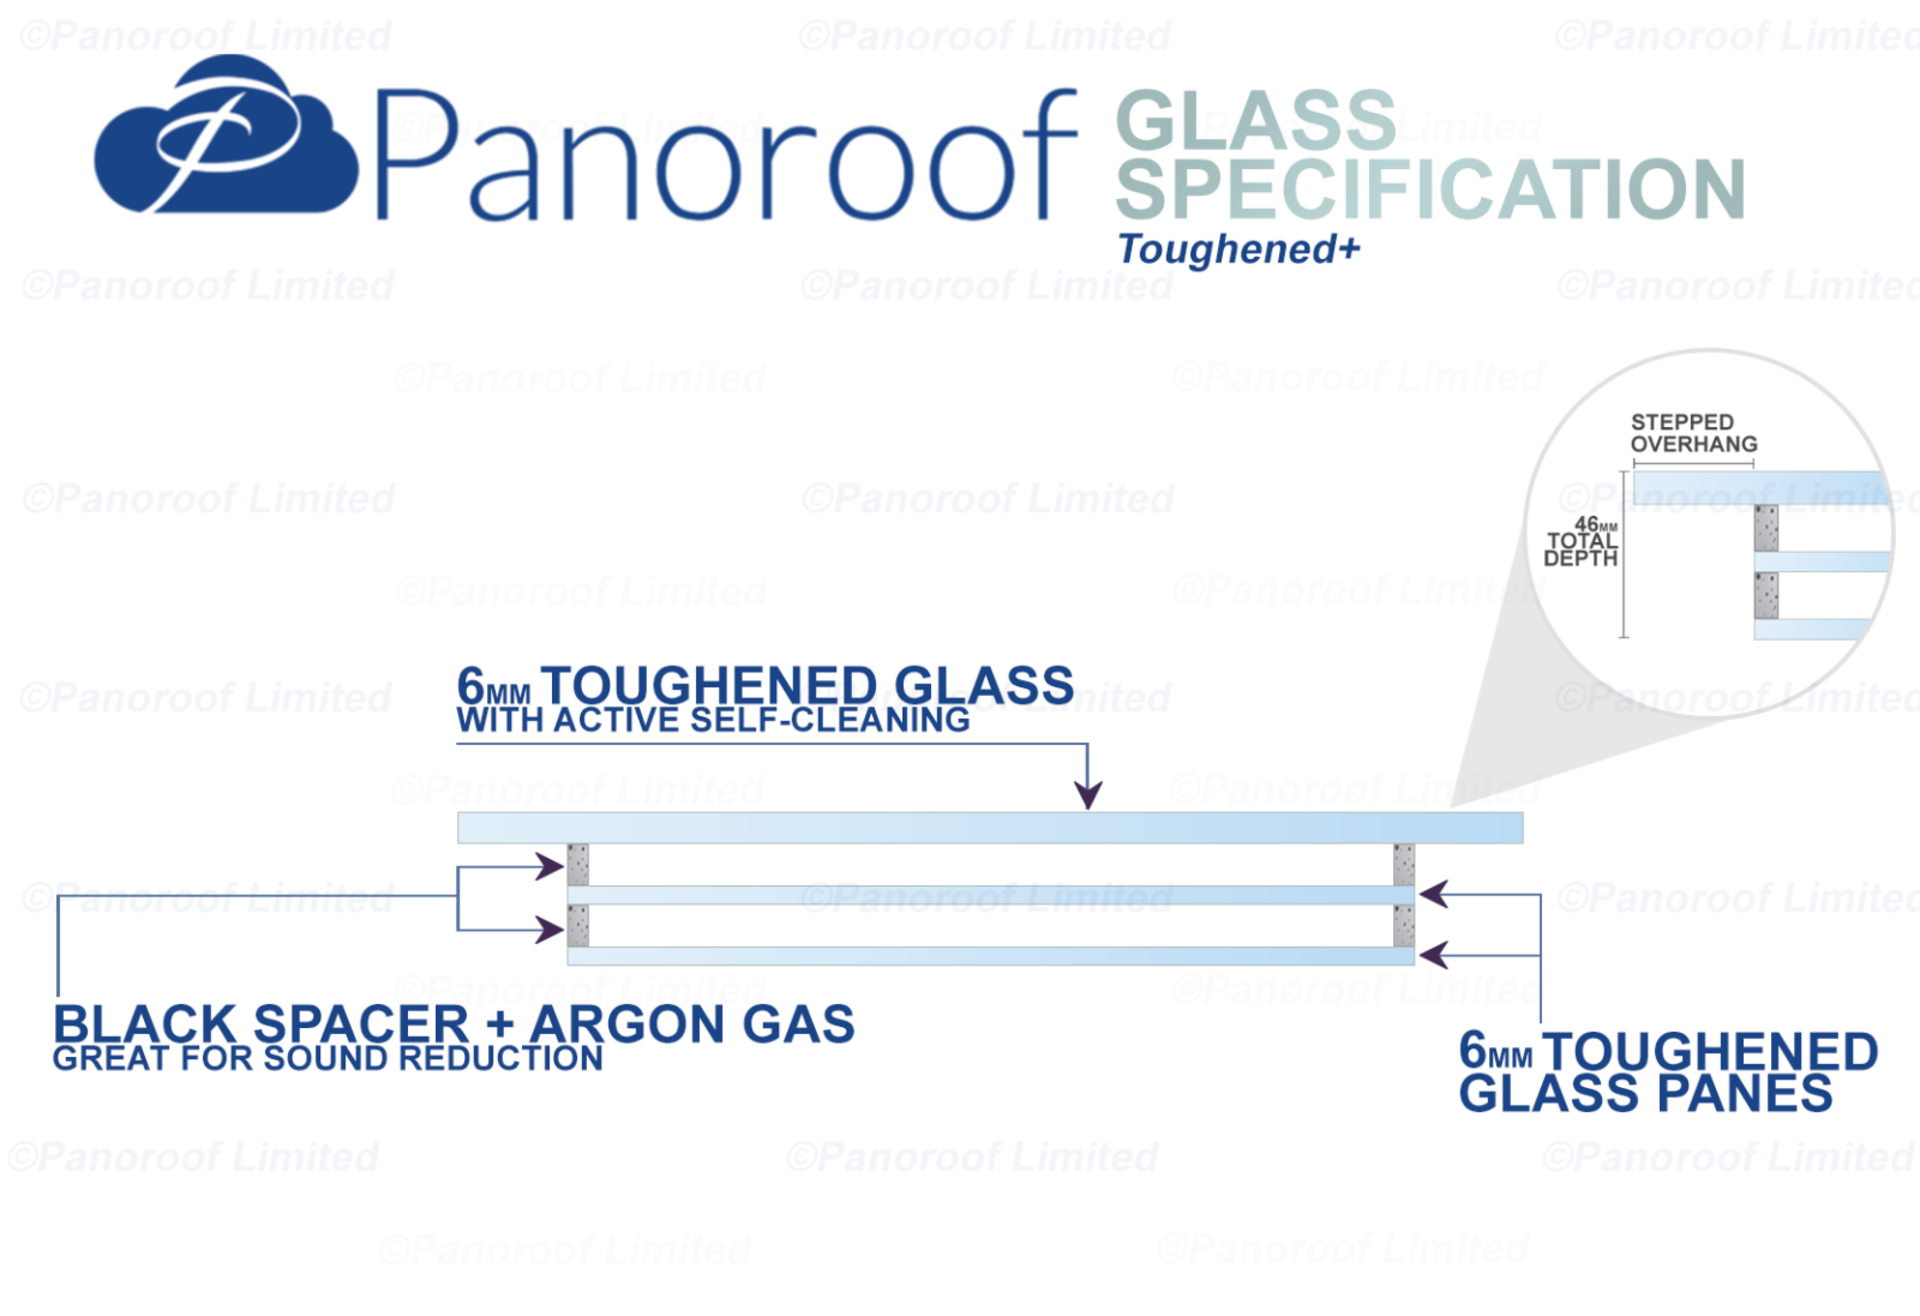 Panoroof 600x3500mm (inside Size Visable glass area) Seamless Glass Skylight Flat Roof Rooflight U - Image 5 of 6